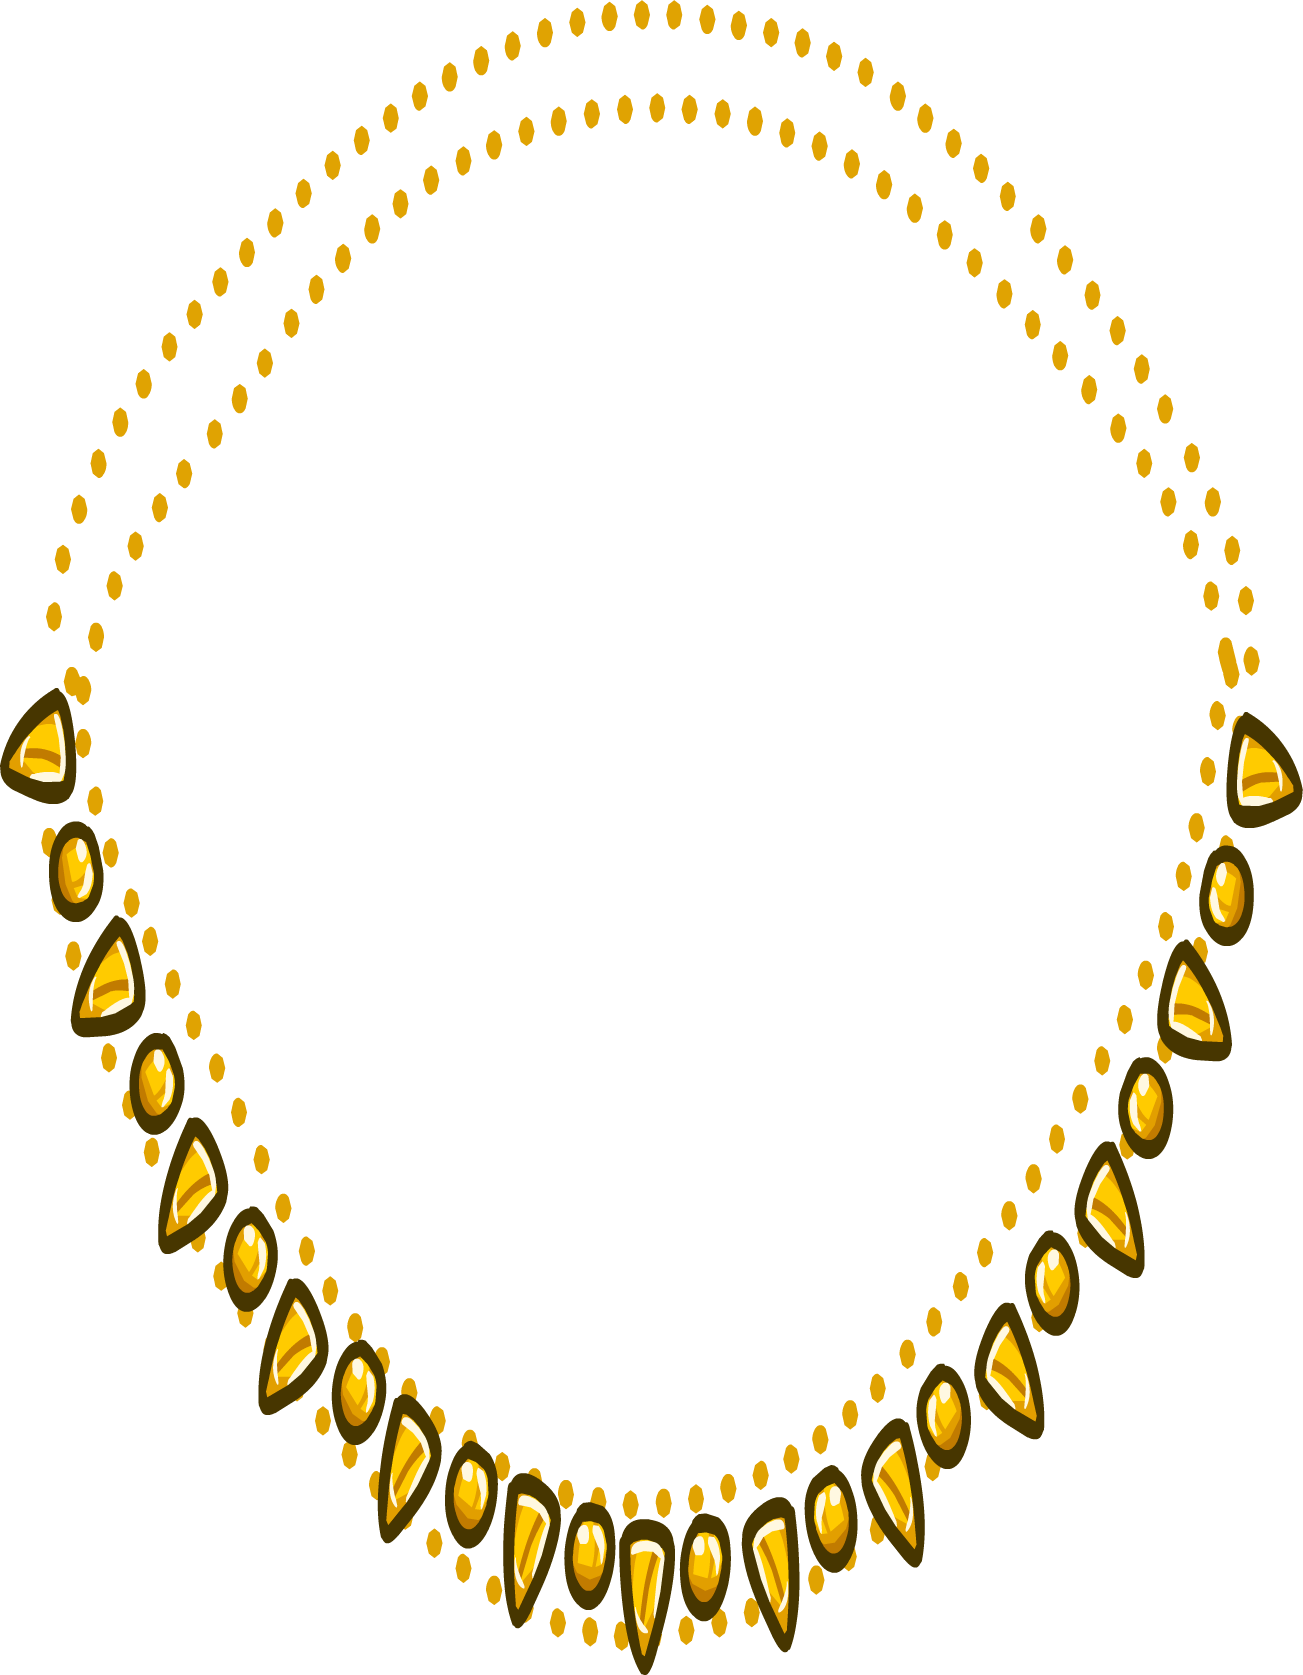 necklace clipart closed neck